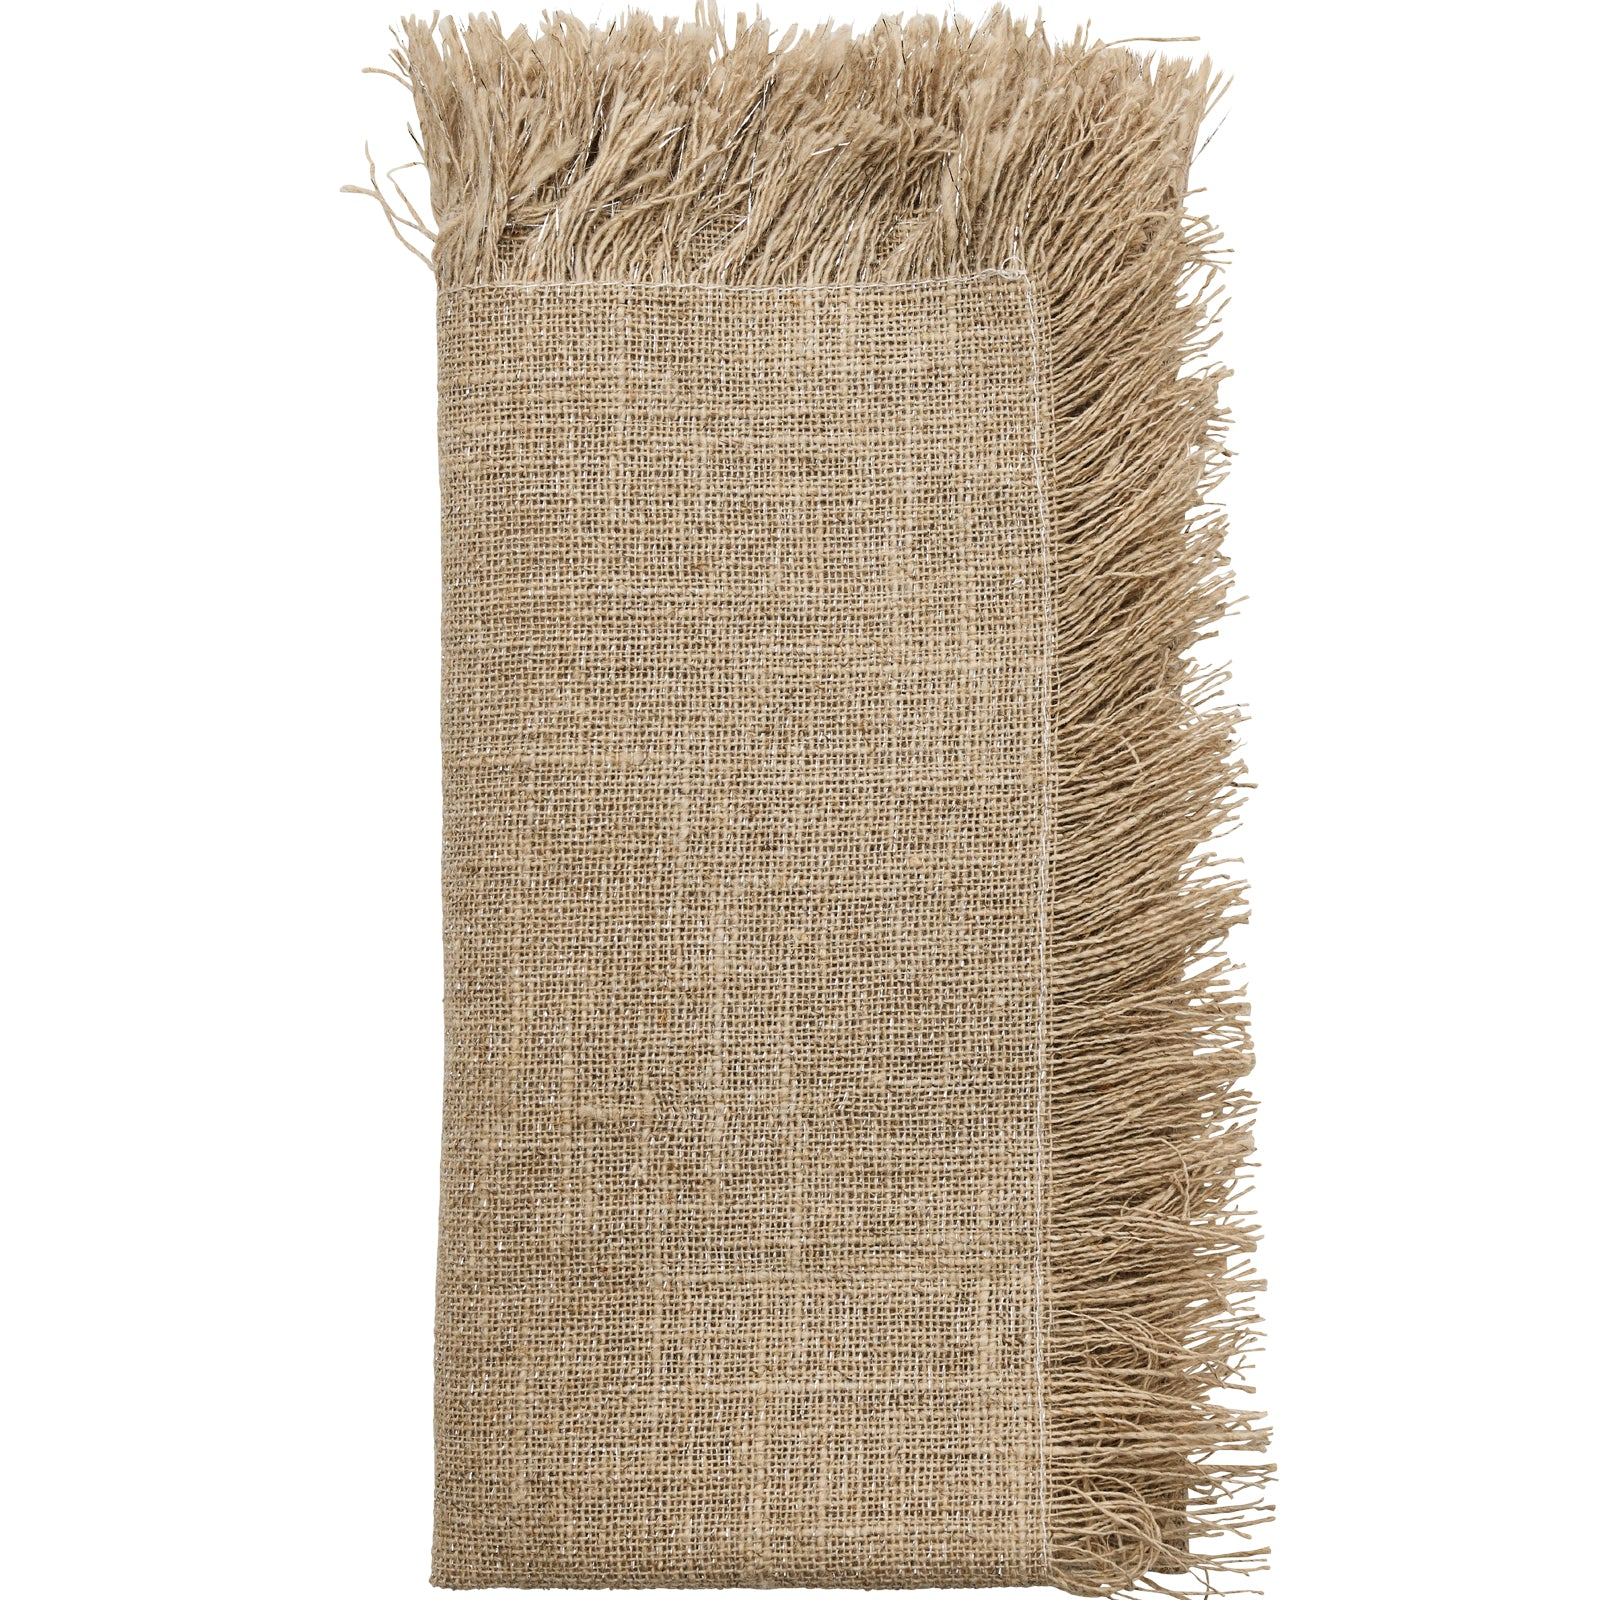 Set of 4 Fringe Napkins